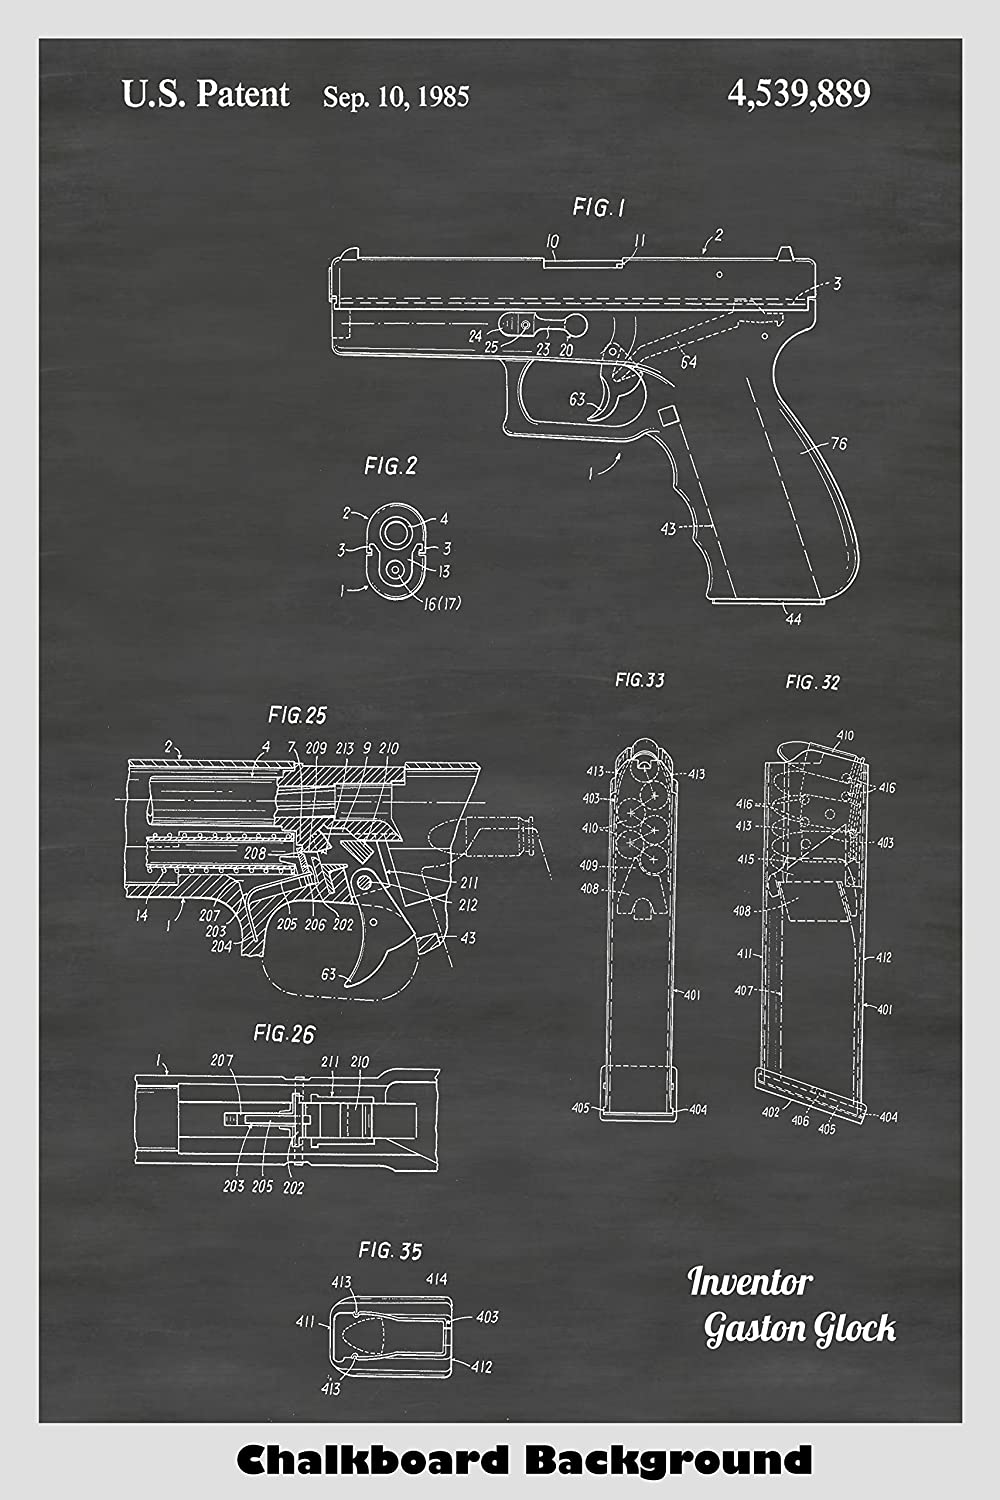 Glock Pistol Patent Print Art Poster: Choose From Multiple Size and Background Color Options